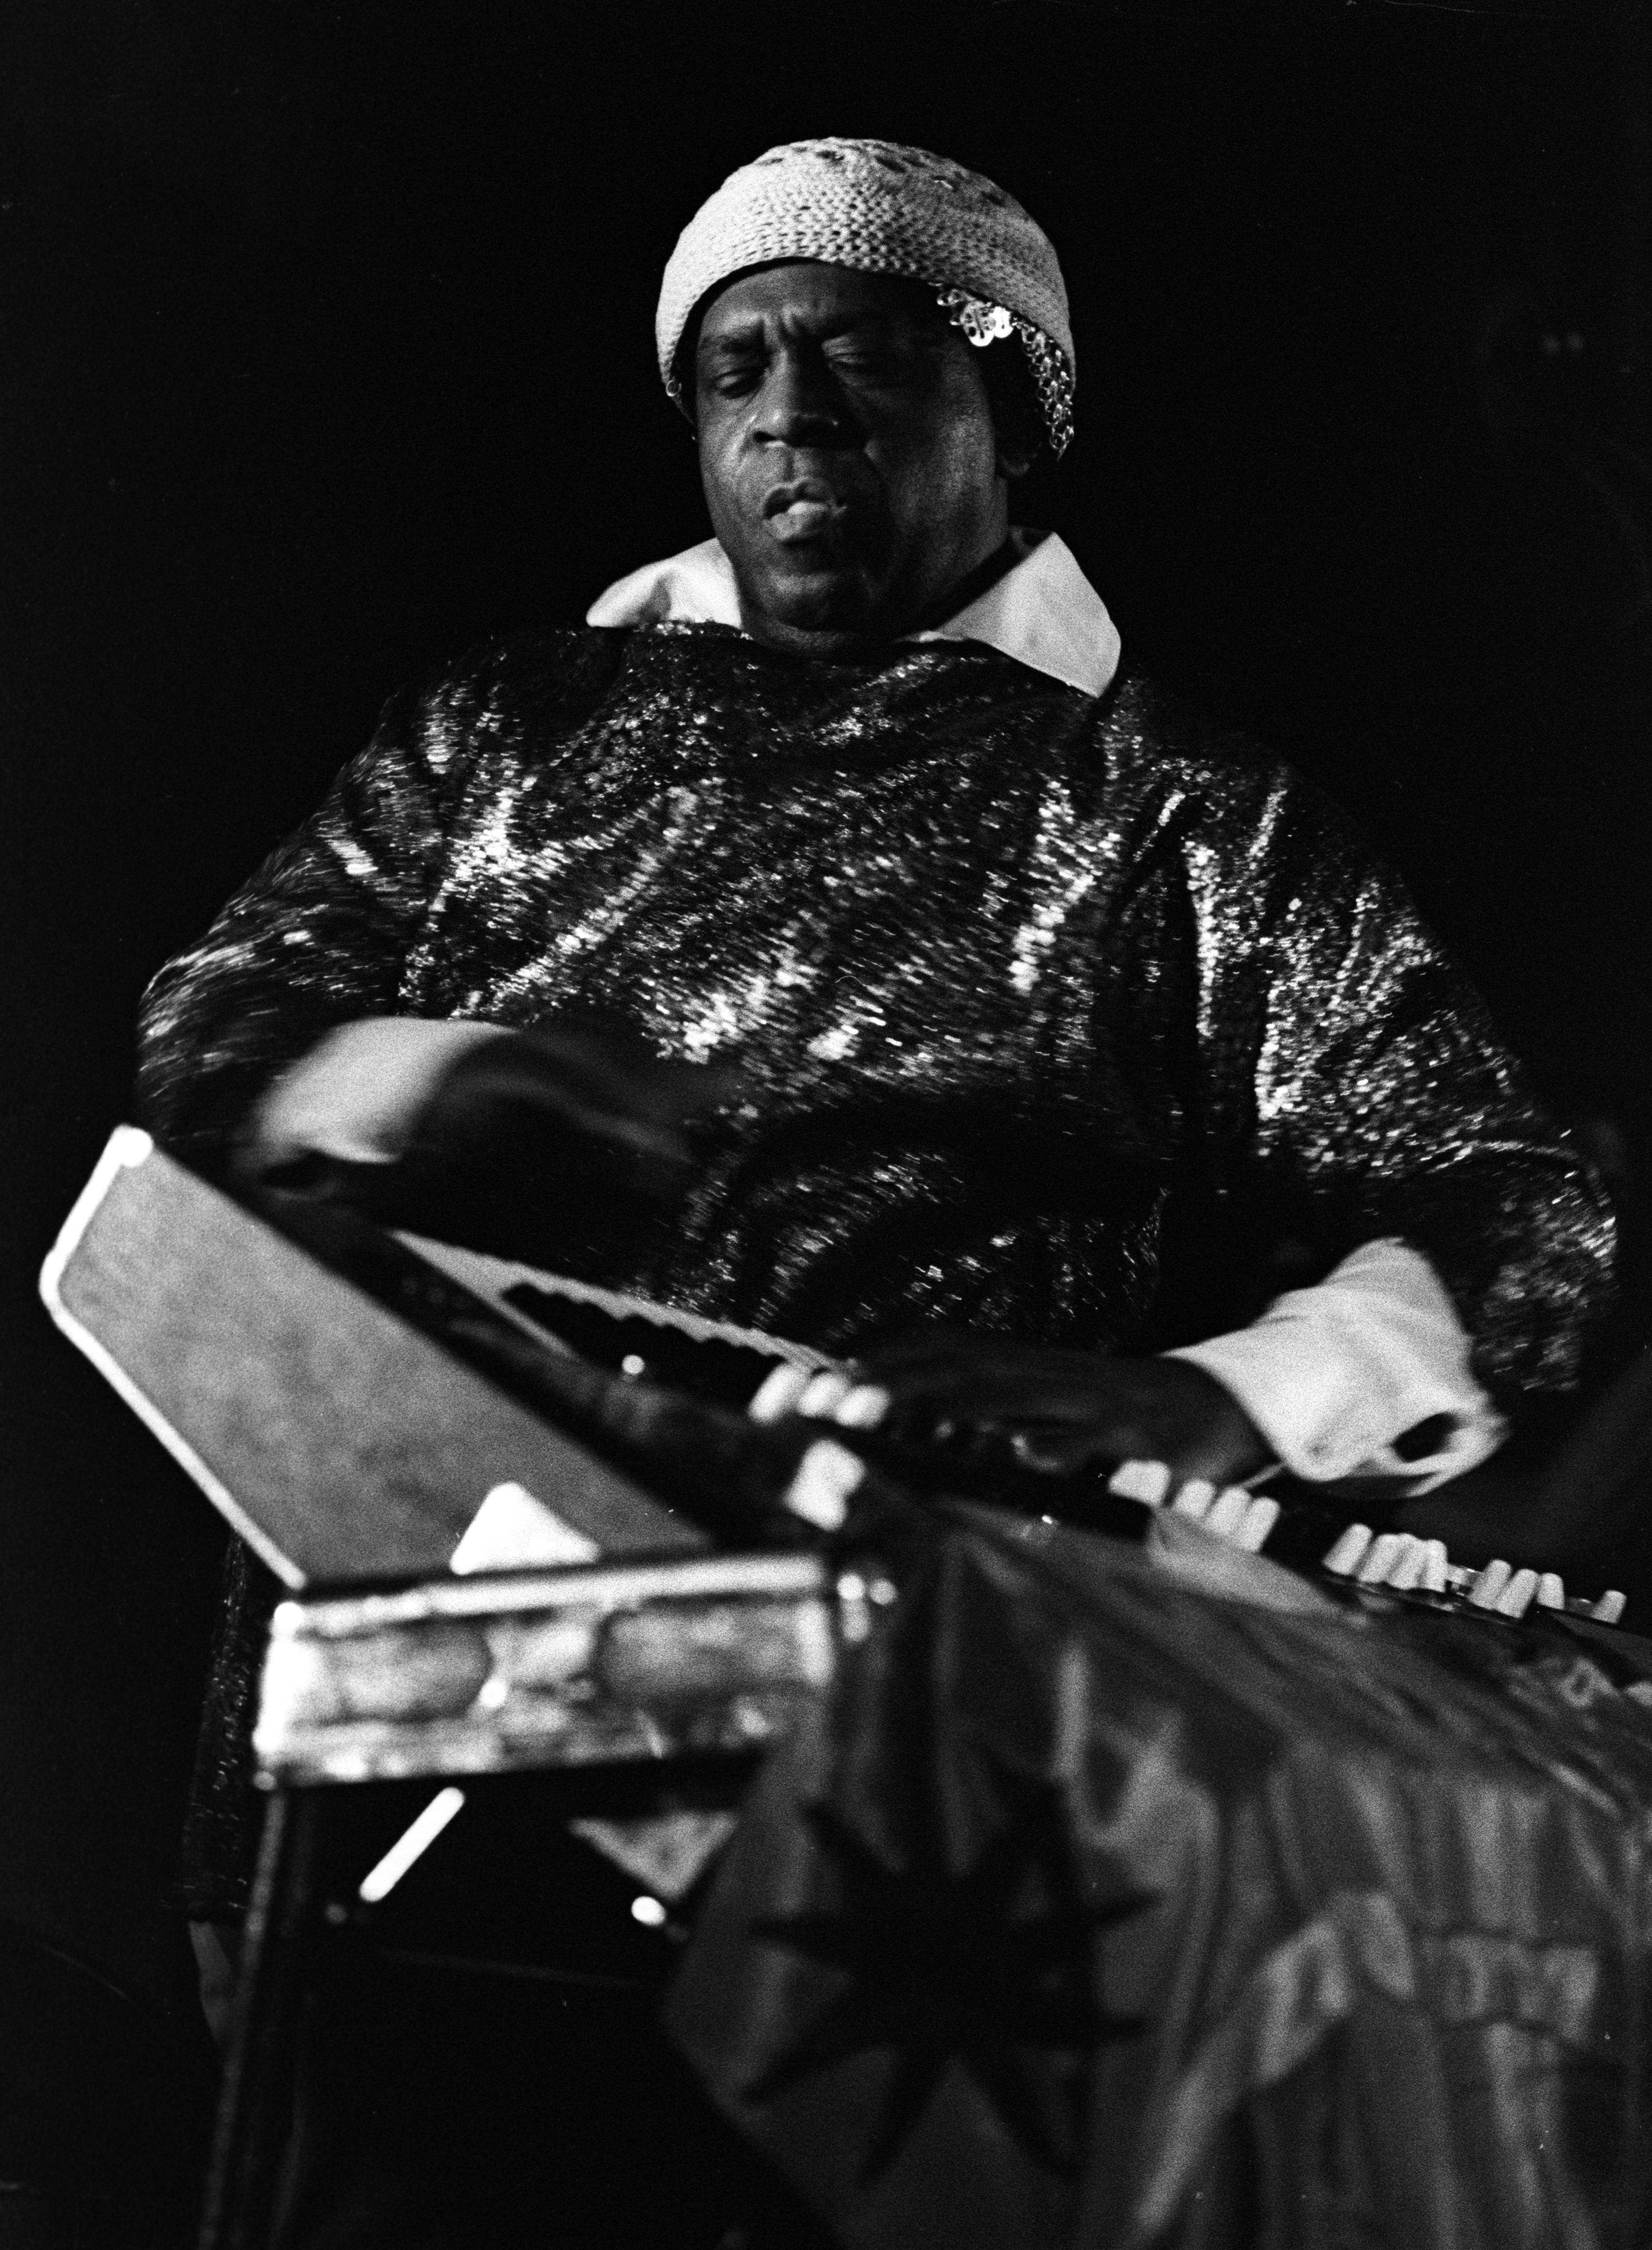 Sun Ra with The Sun Ra Arkestra at the Michigan Union, July 1977 image